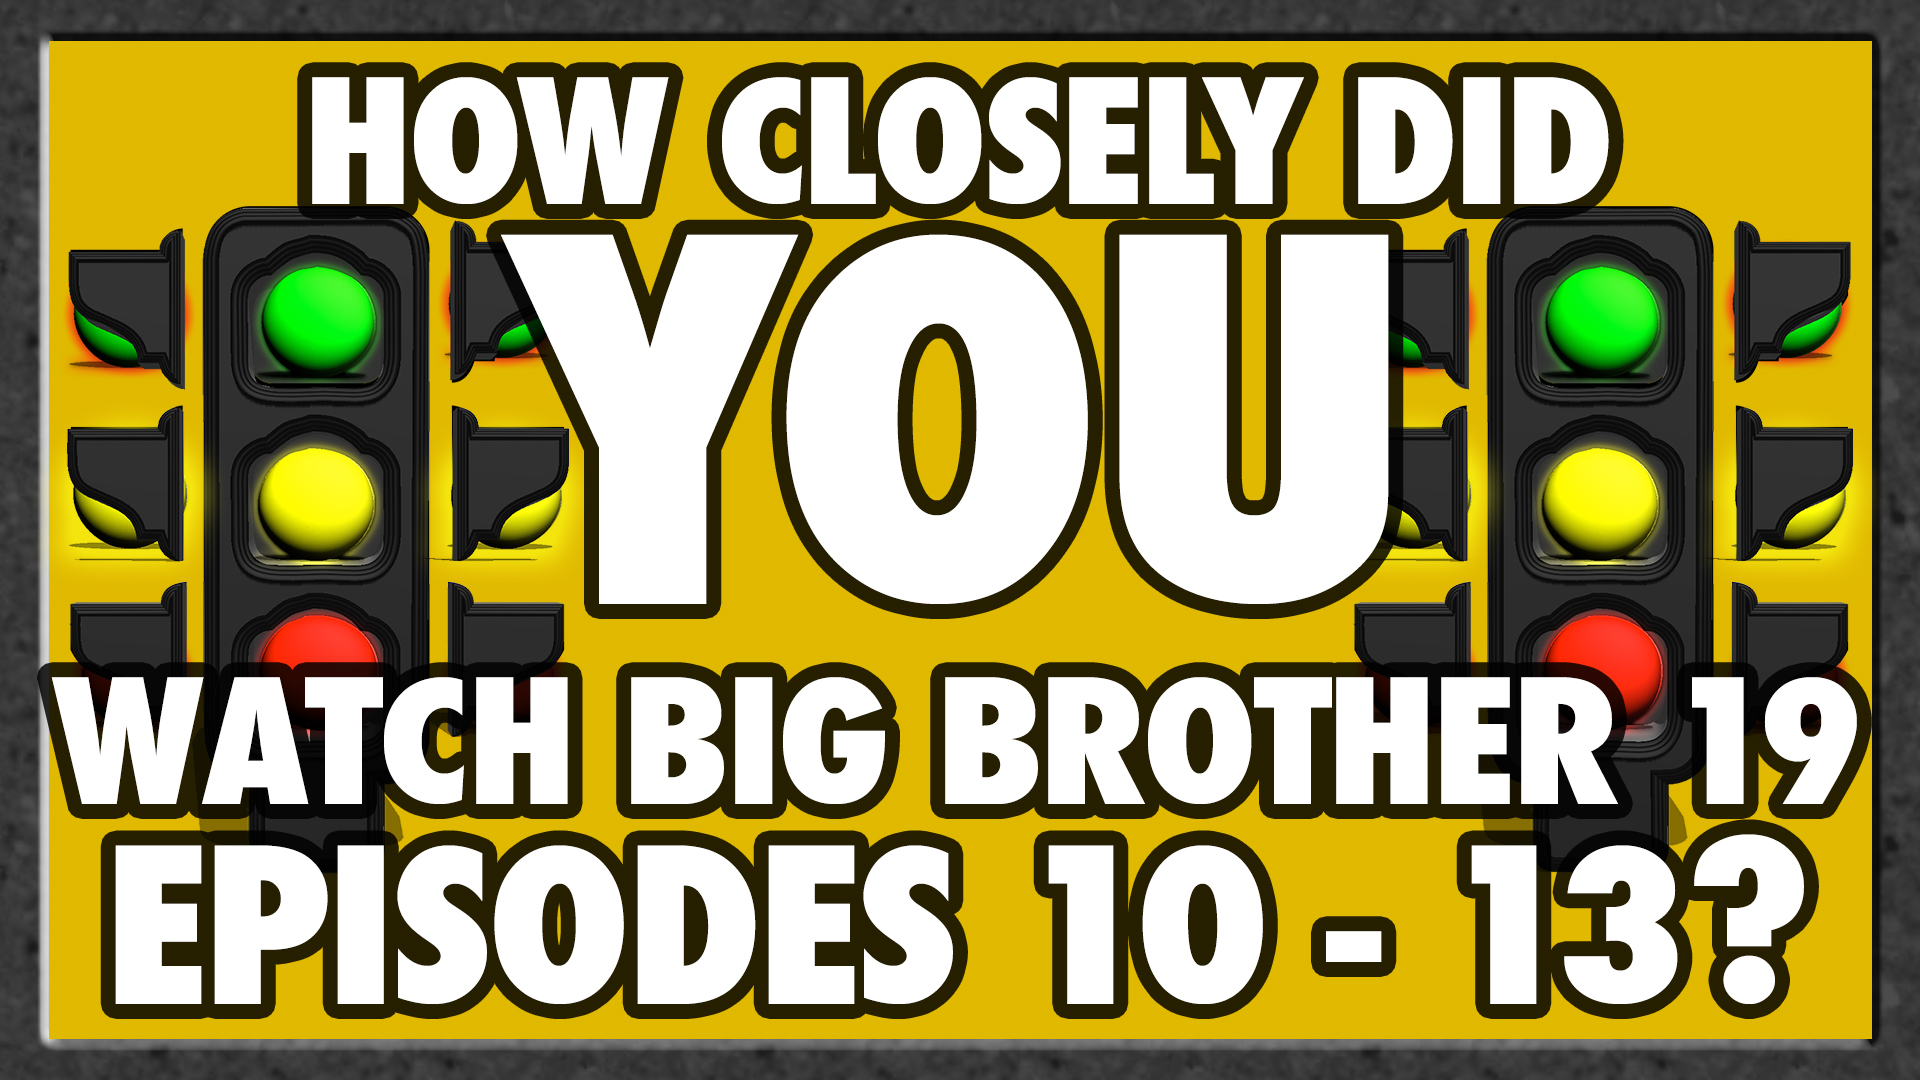 Test your knowledge on Episodes 10-13.